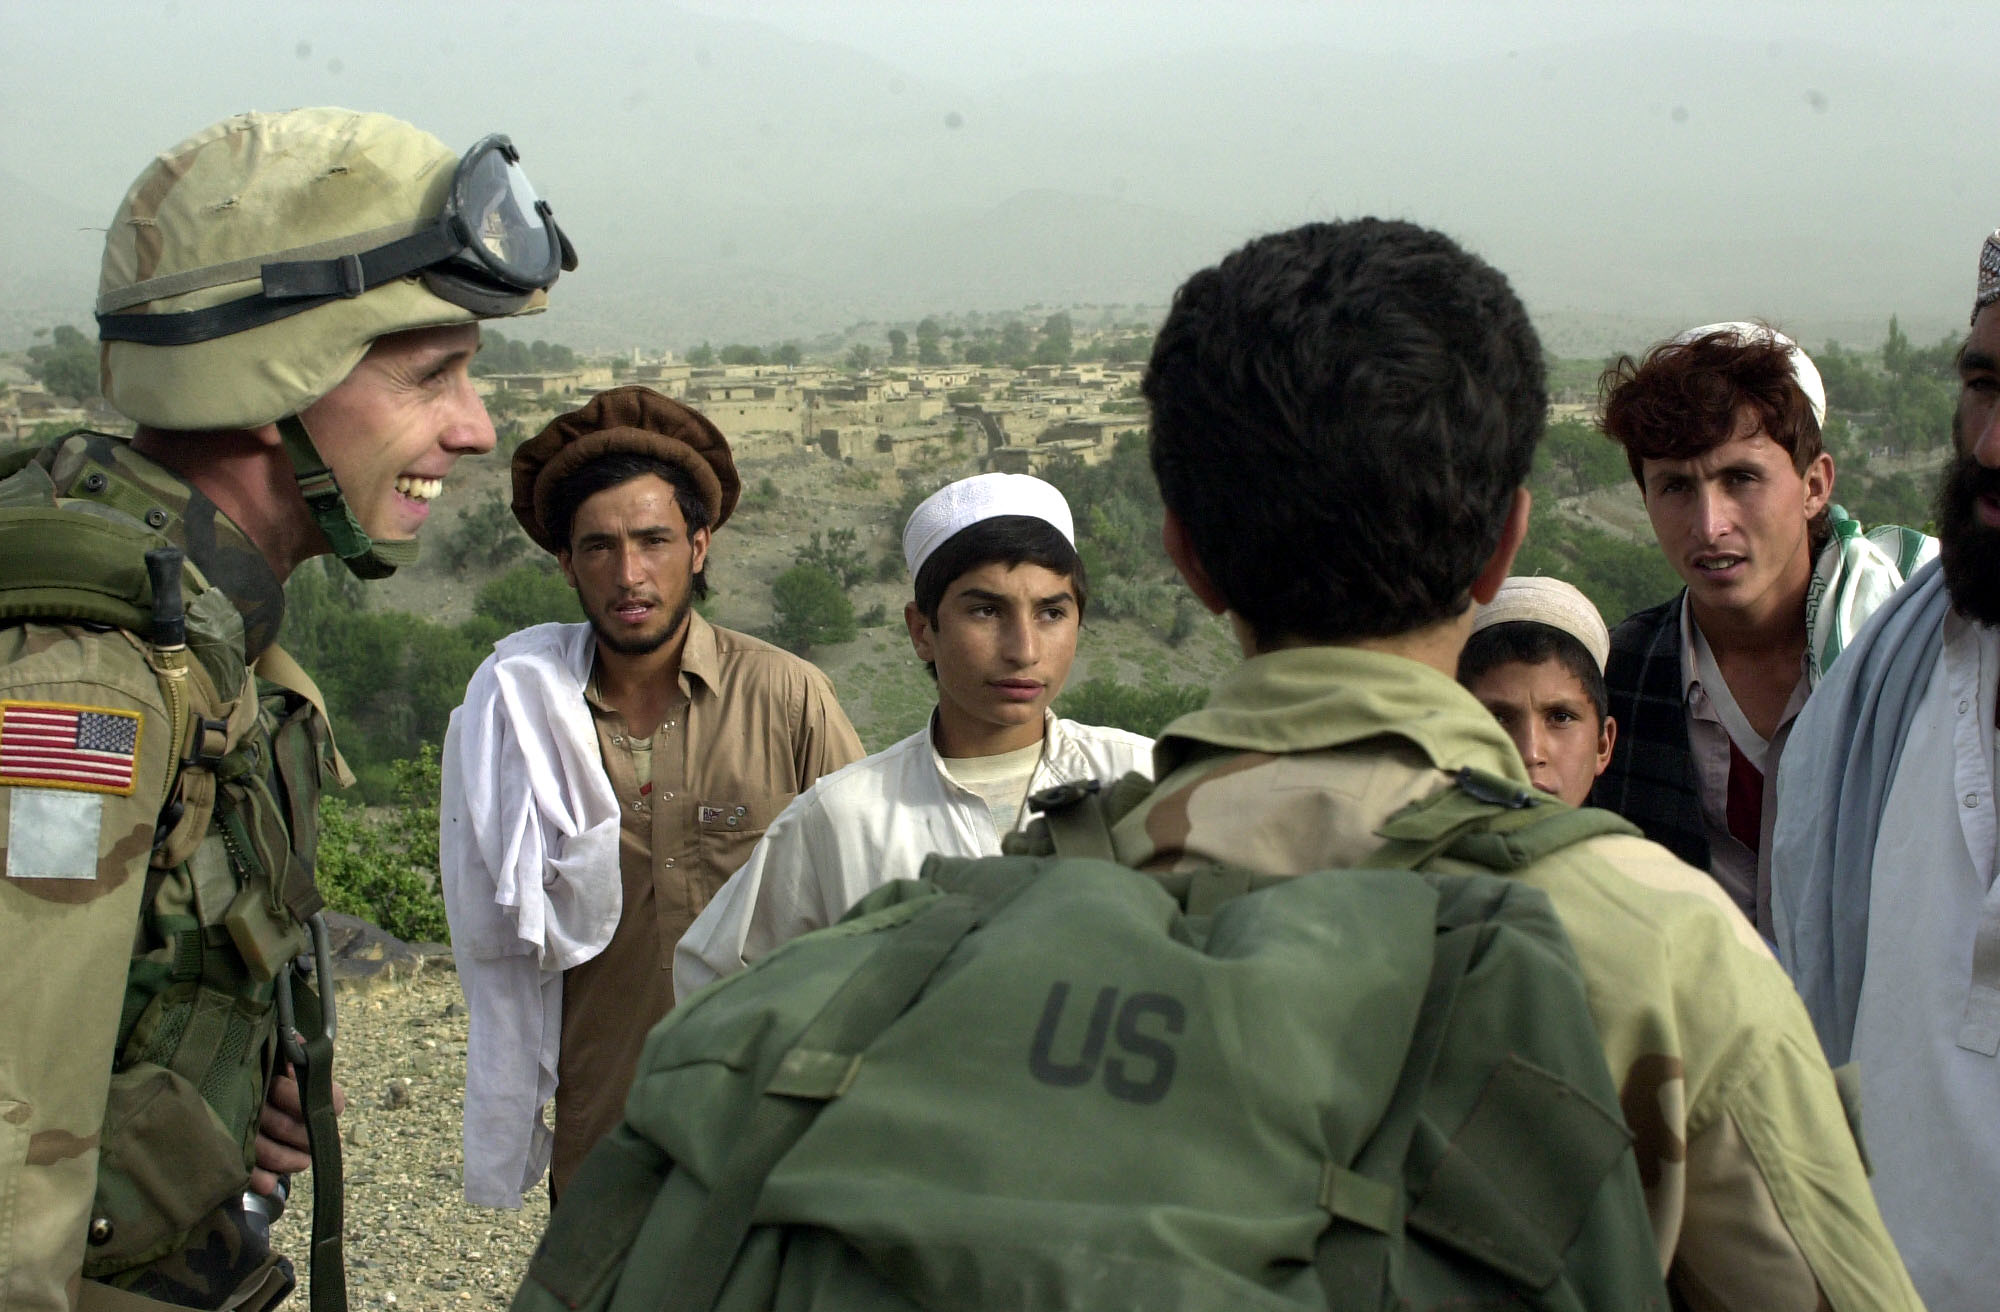 Foreign forces leave Afghanistan, government arms citizens